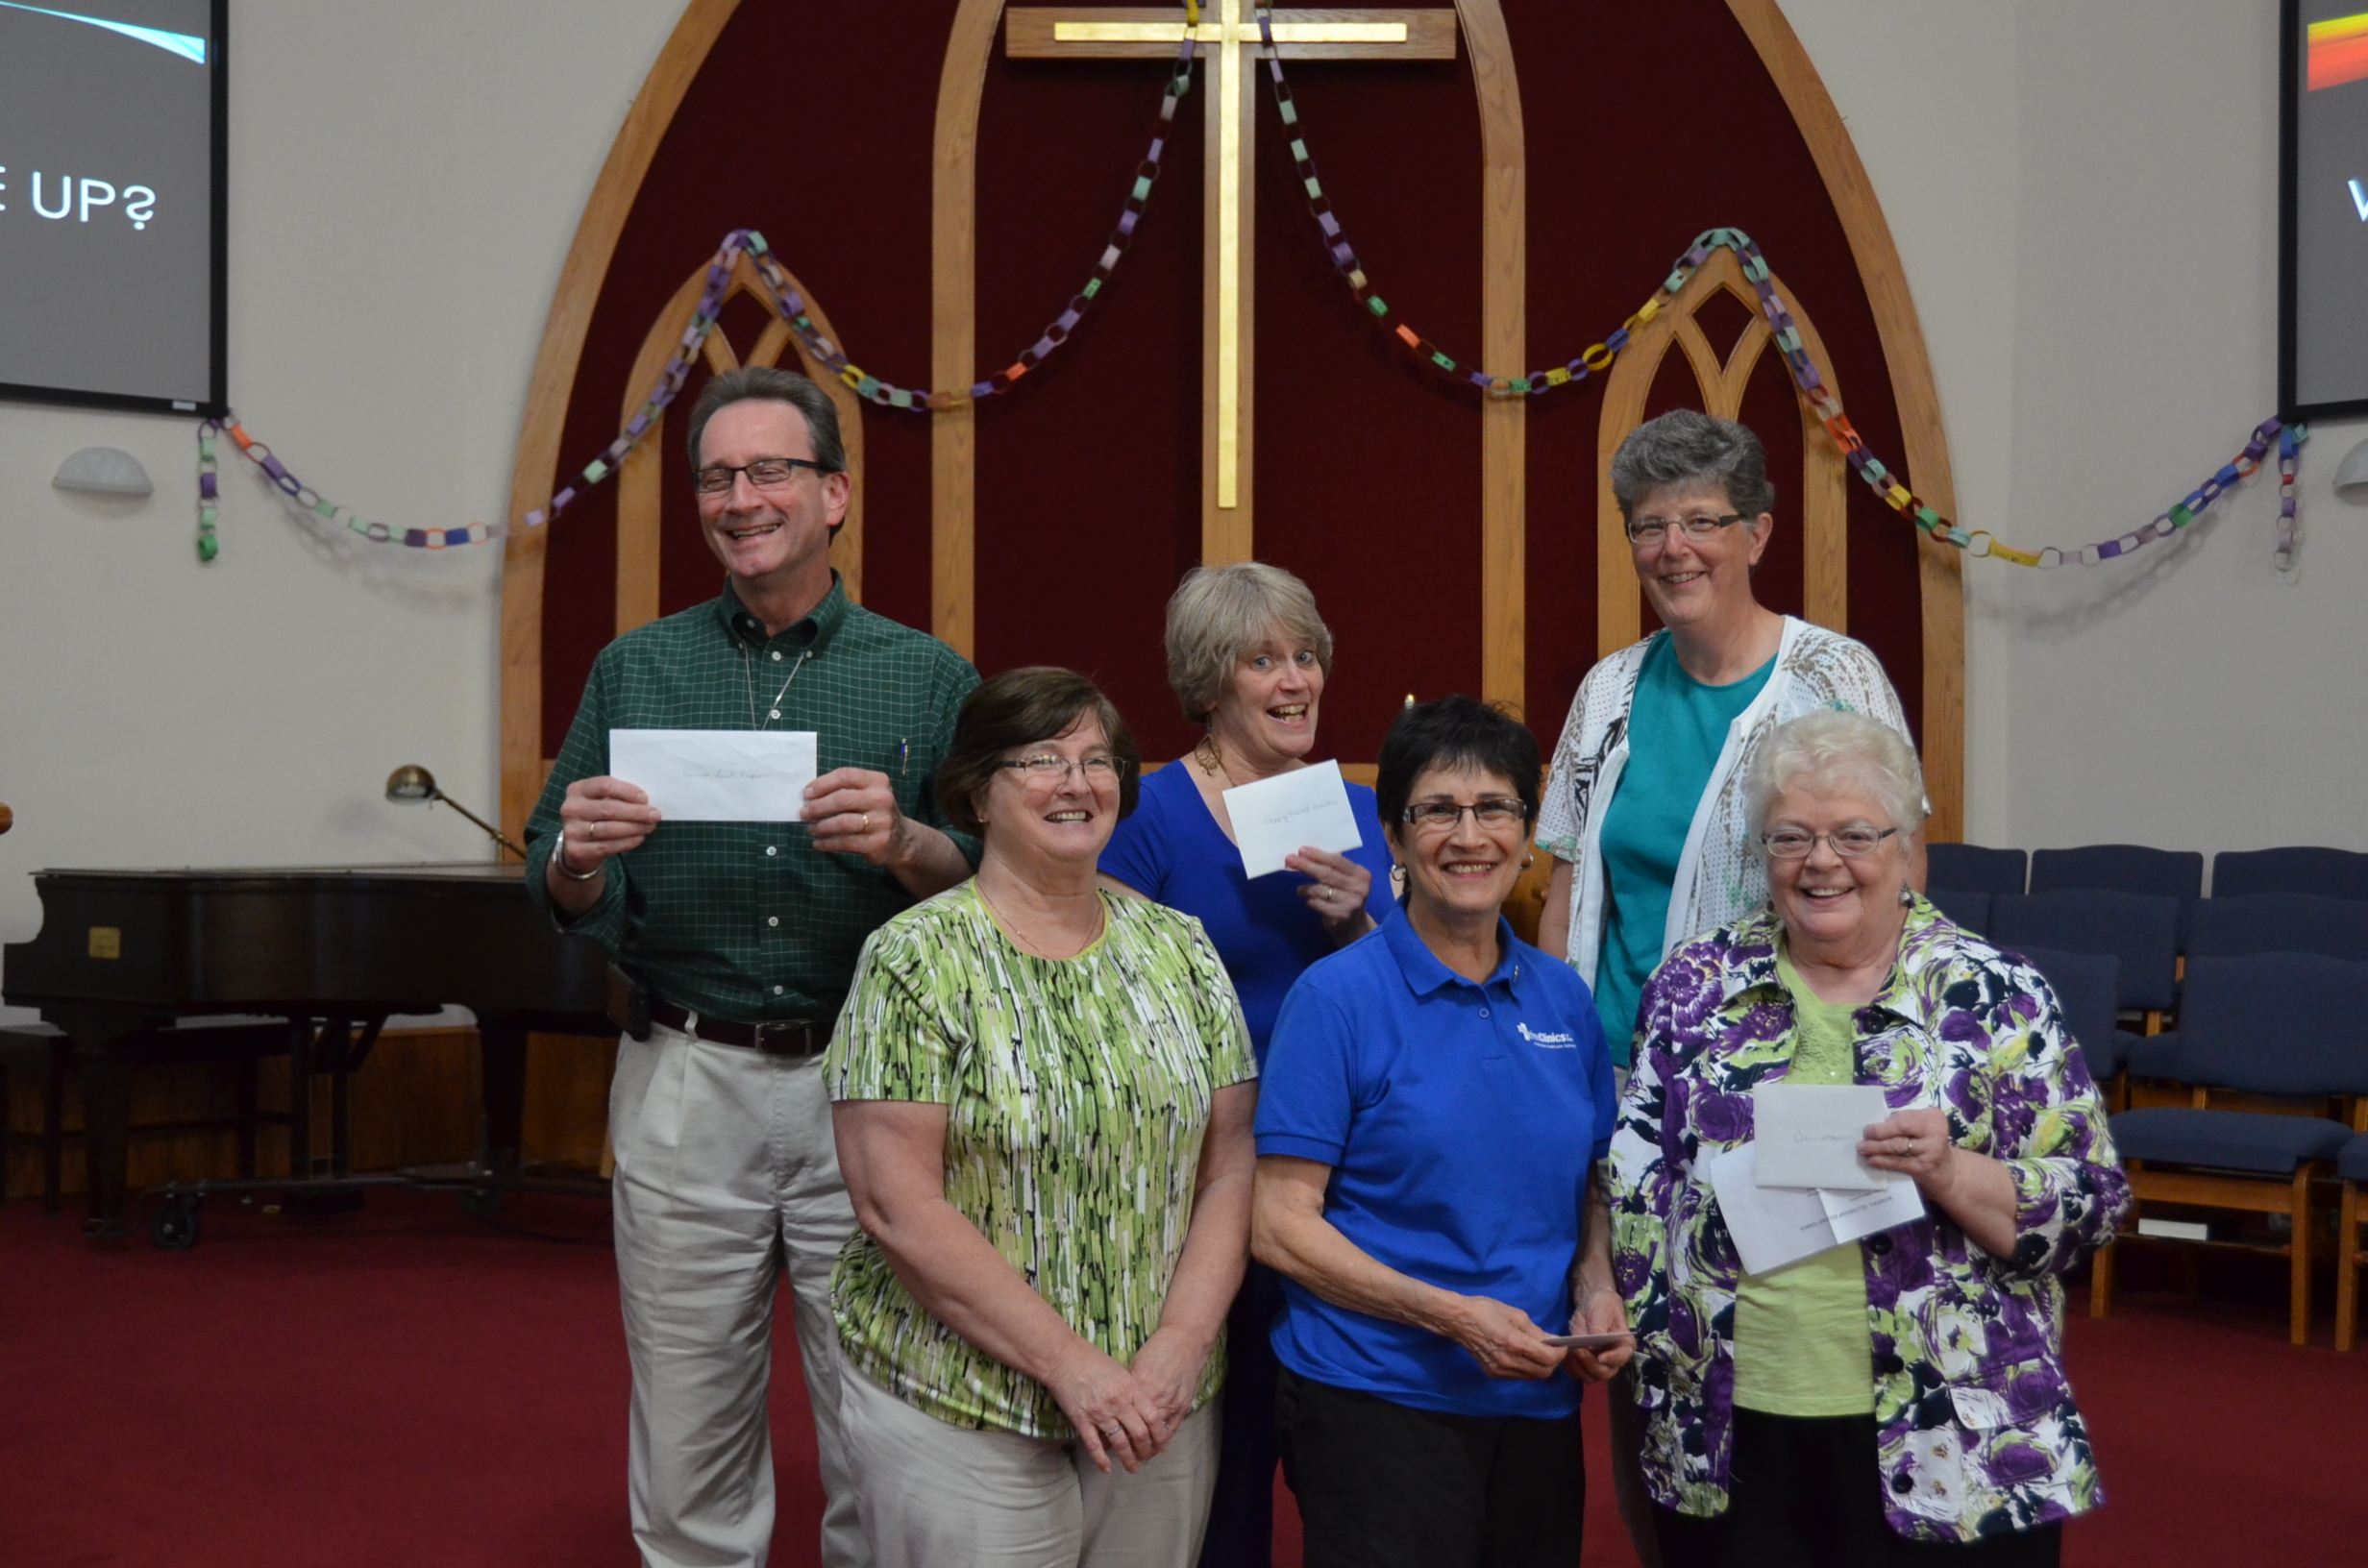 Some grateful recipients of grant money raised by the Women's Fellowship!